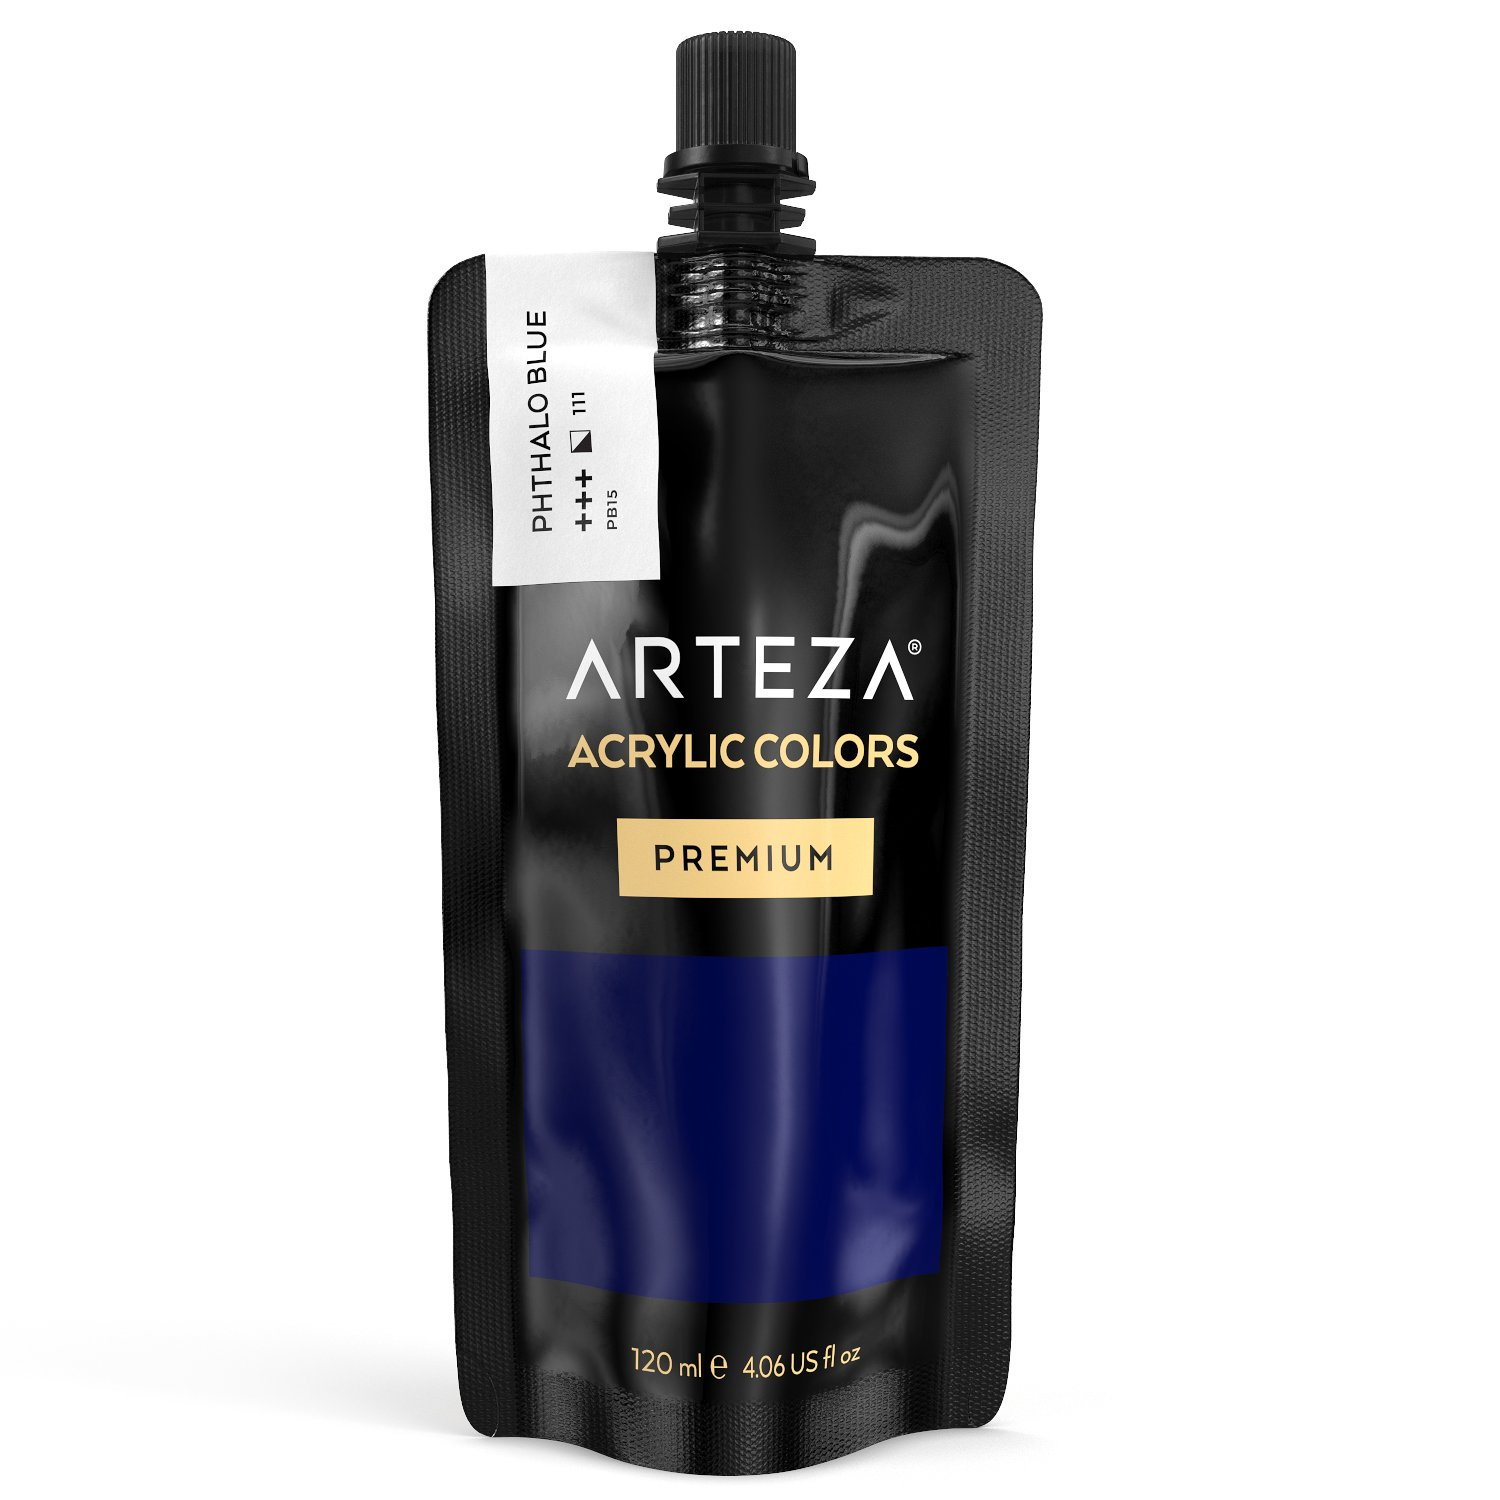 ARTEZA Acrylic Premium Artist Paint, Scarlet Red Color, (120 ml Pouch)